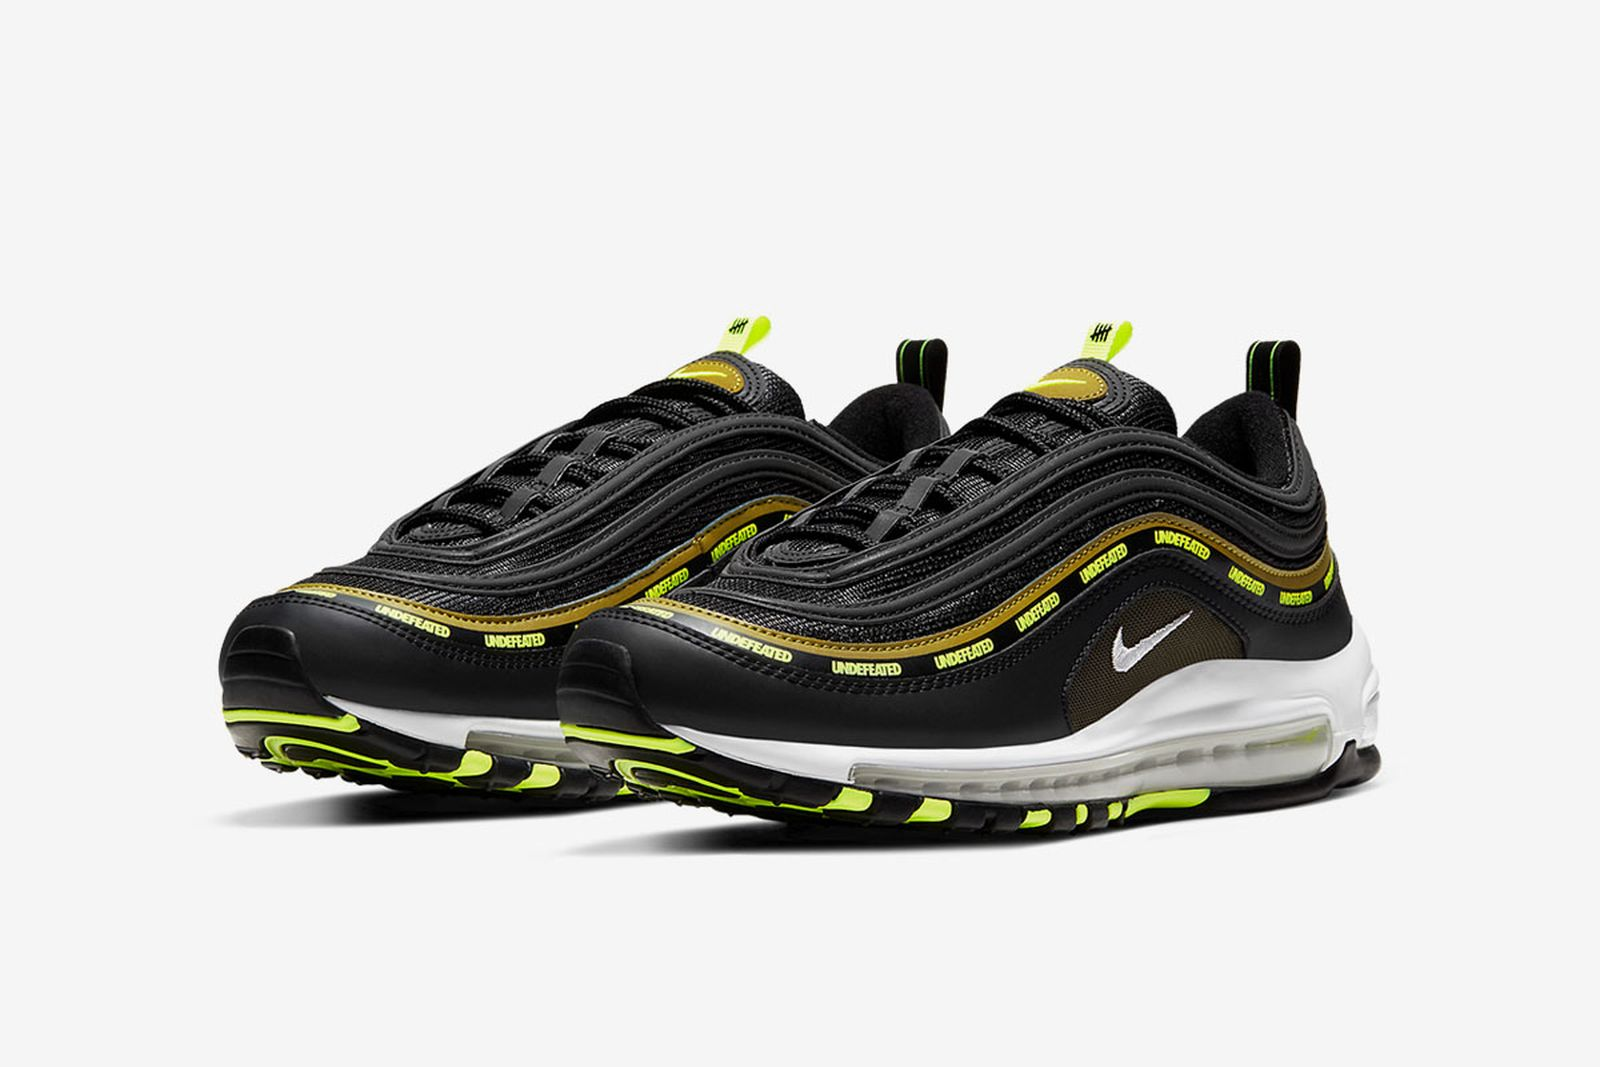 undefeated-nike-air-max-97-release-date-price-08